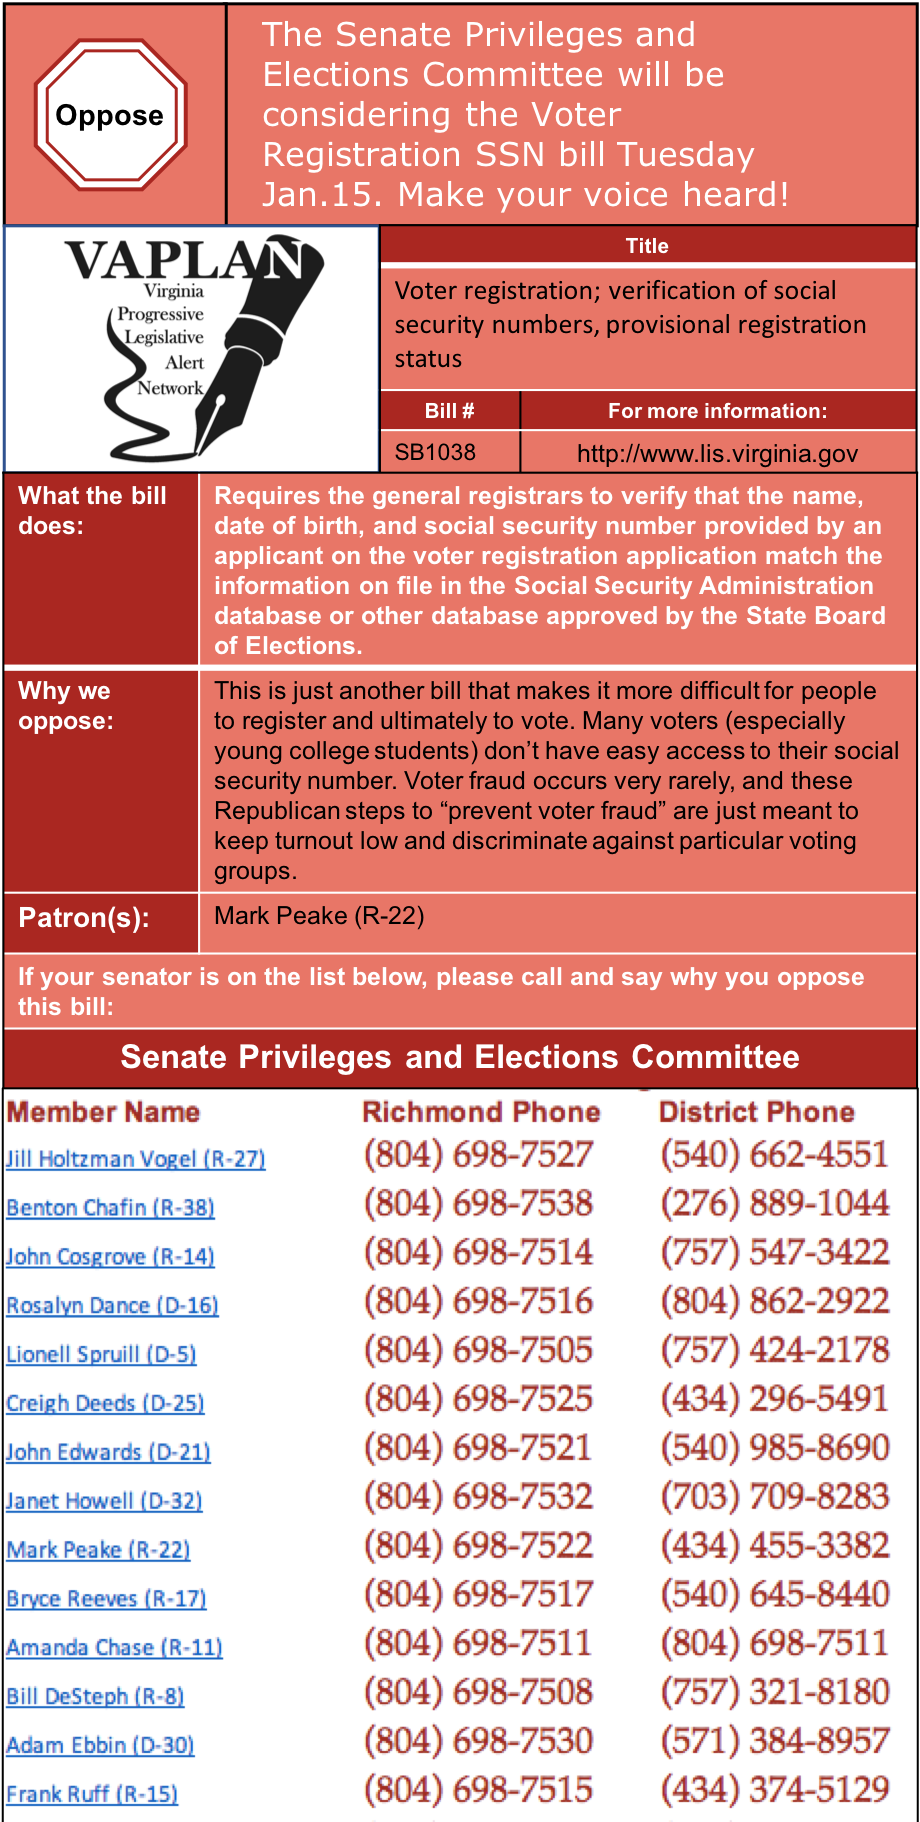 ALERT: Oppose requiring SSN on voter registration (SB1038